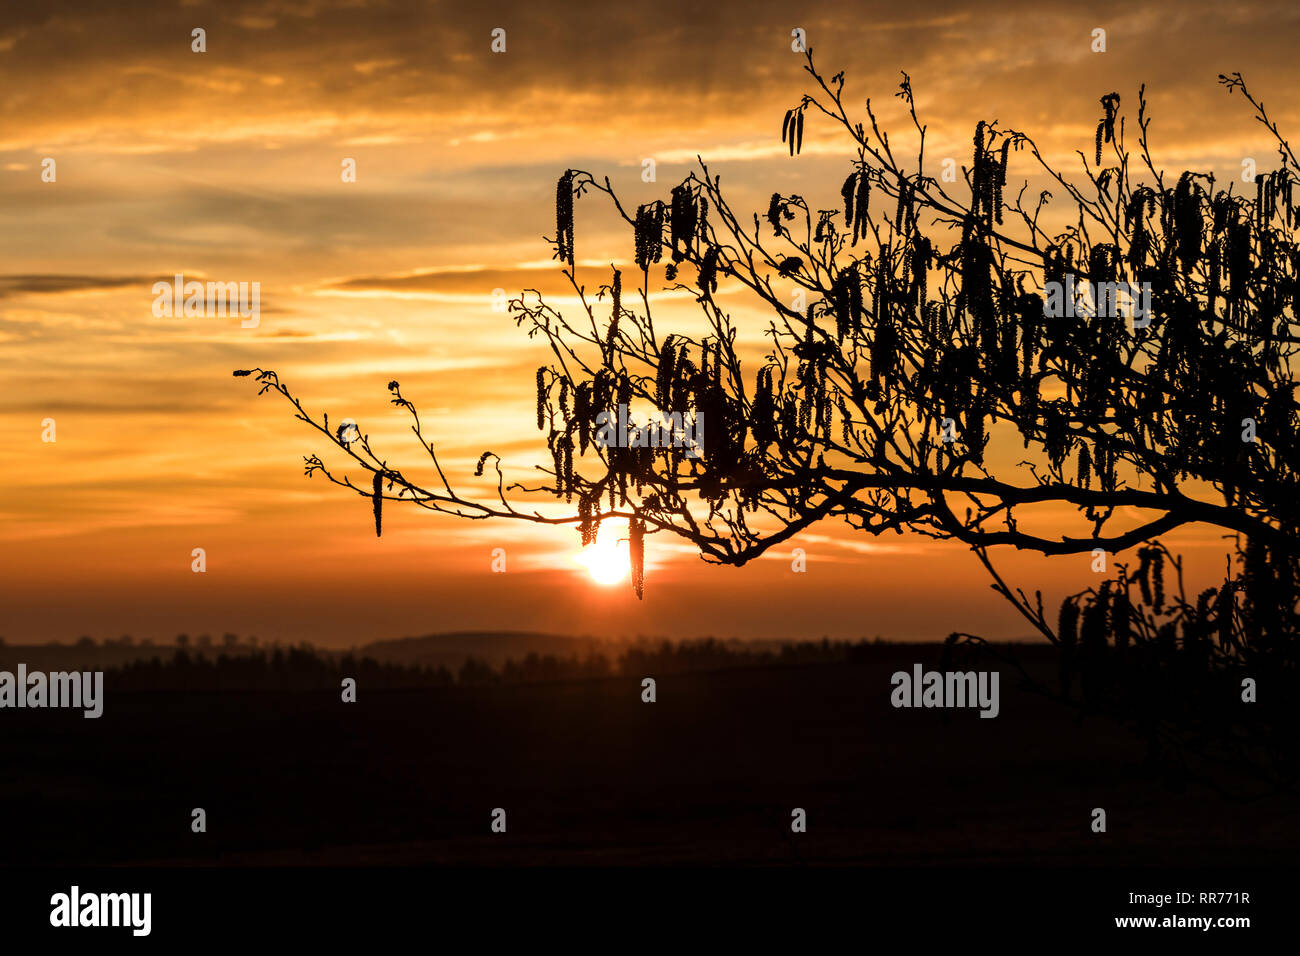 Teesdale, County Durham, UK. Monday 25th February 2019. UK Weather. A spectacular sunrise heralds another day of unseasonably warm weather in Northern England. Credit: David Forster/Alamy Live News - Stock Image